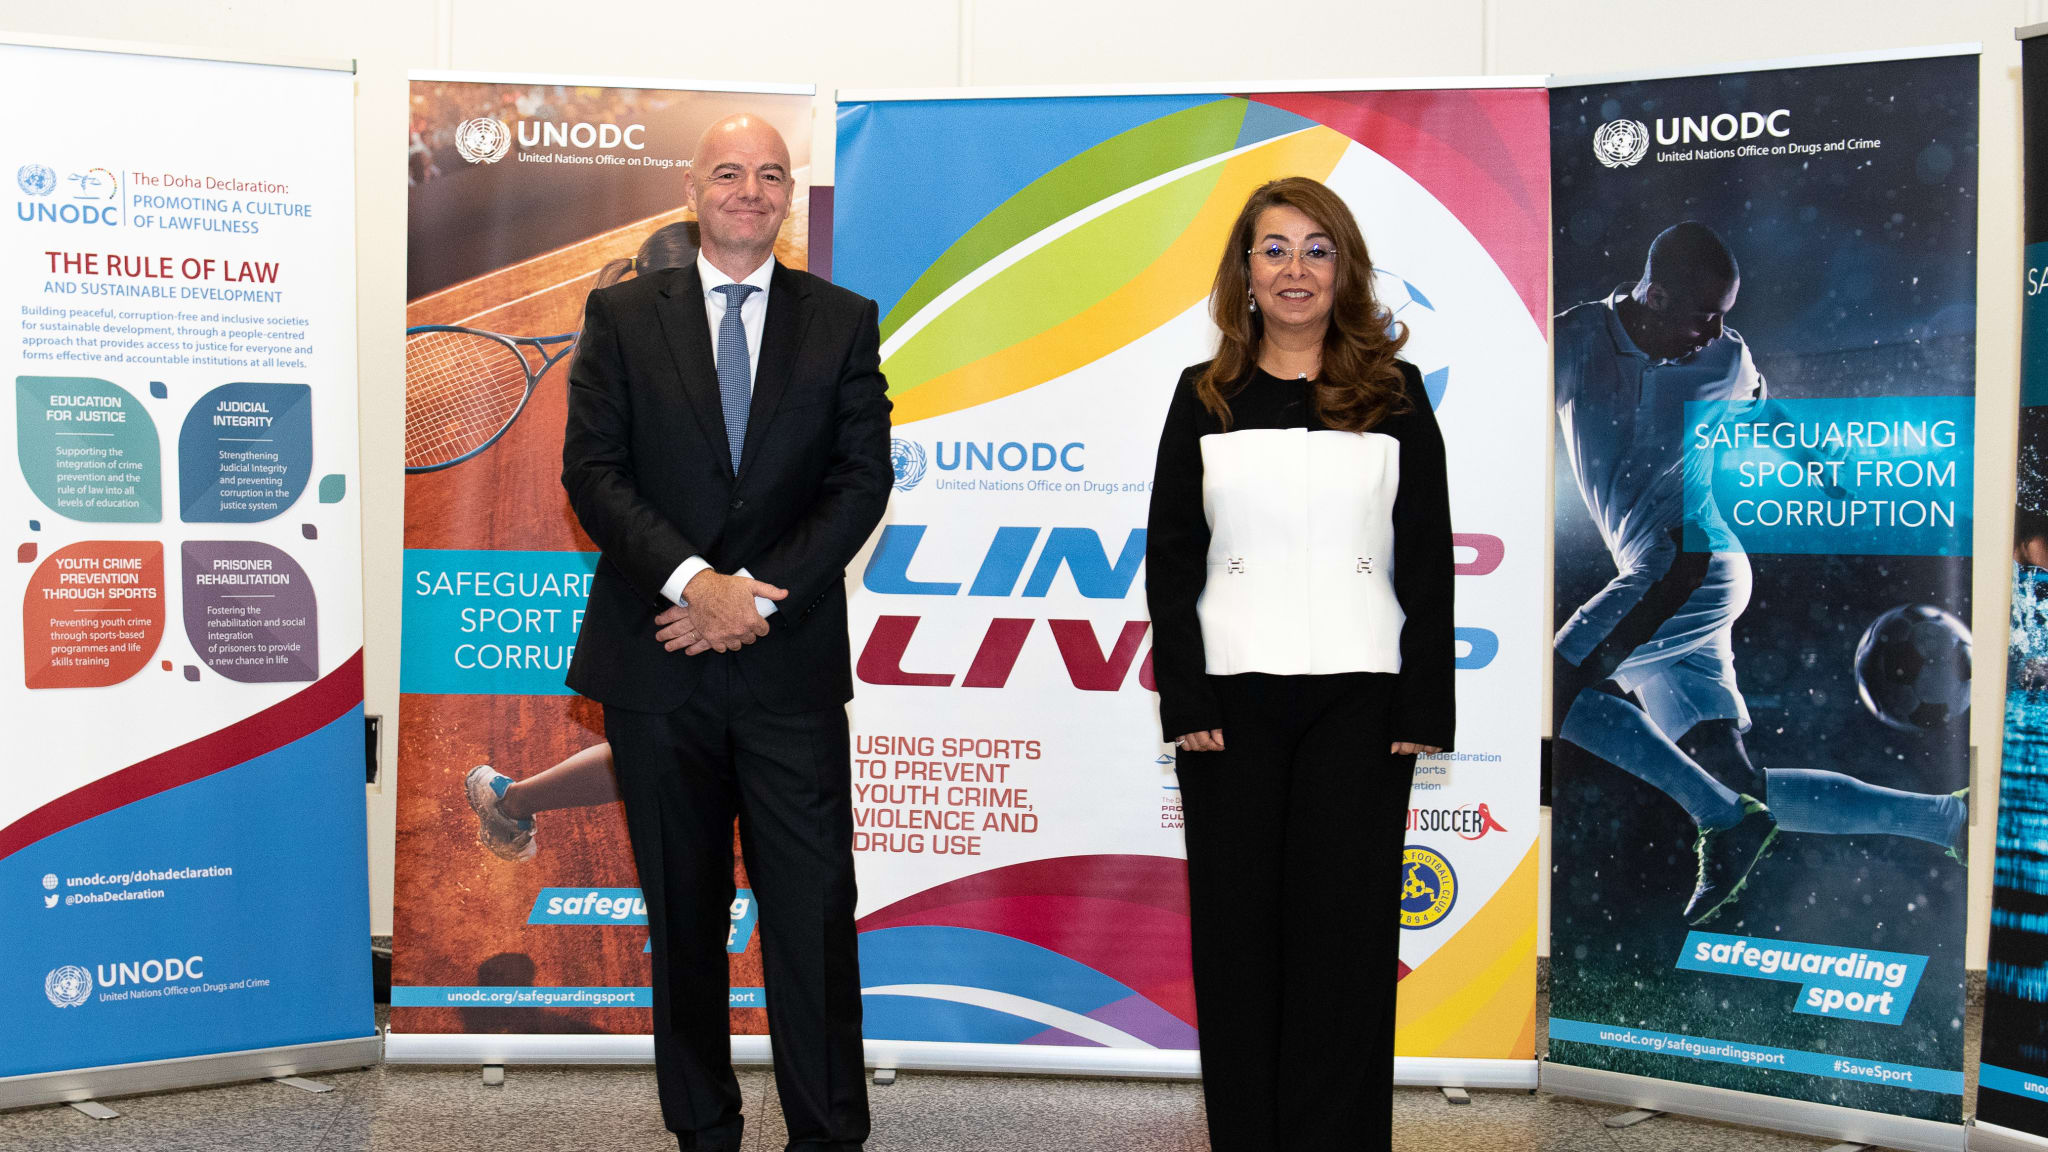 UNODC, FIFA collaborate to root out corruption and encourage the growth of young people through football